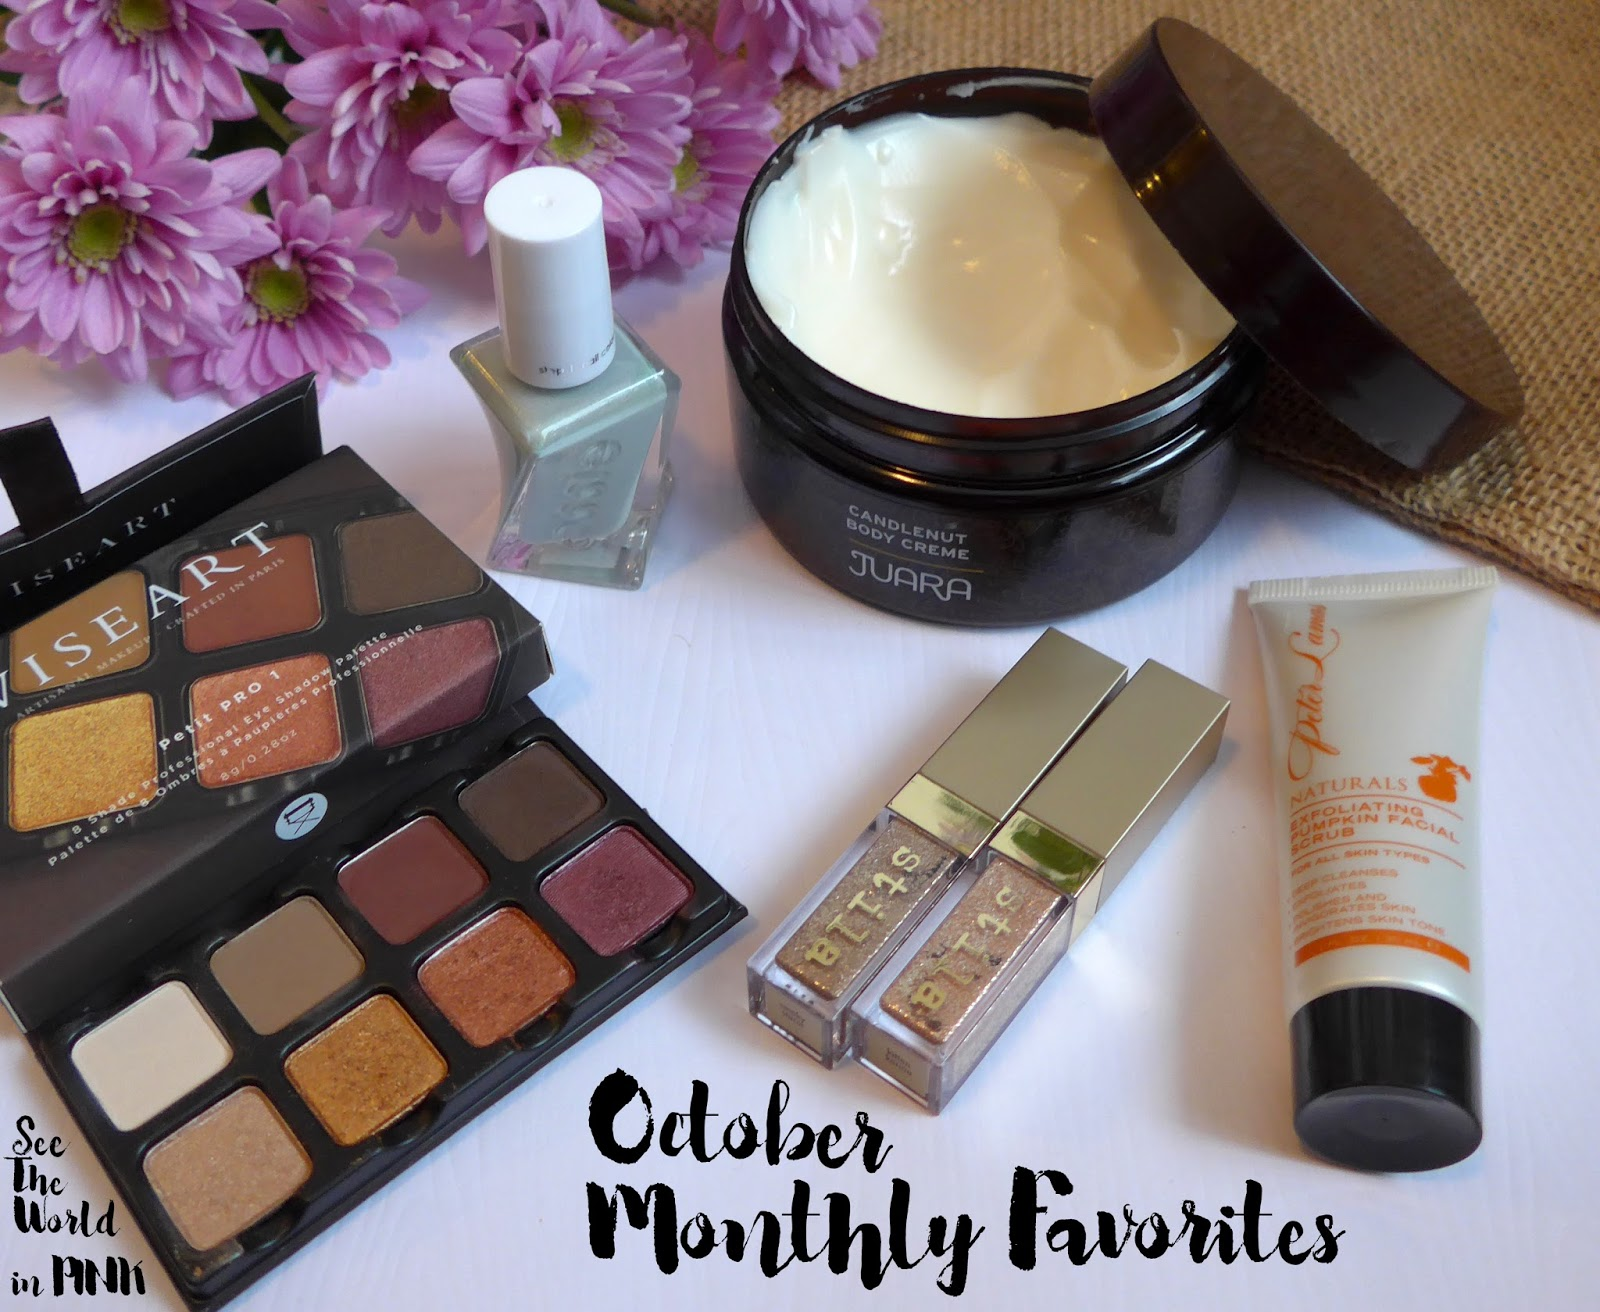 October 2017 - Monthly Favorites!